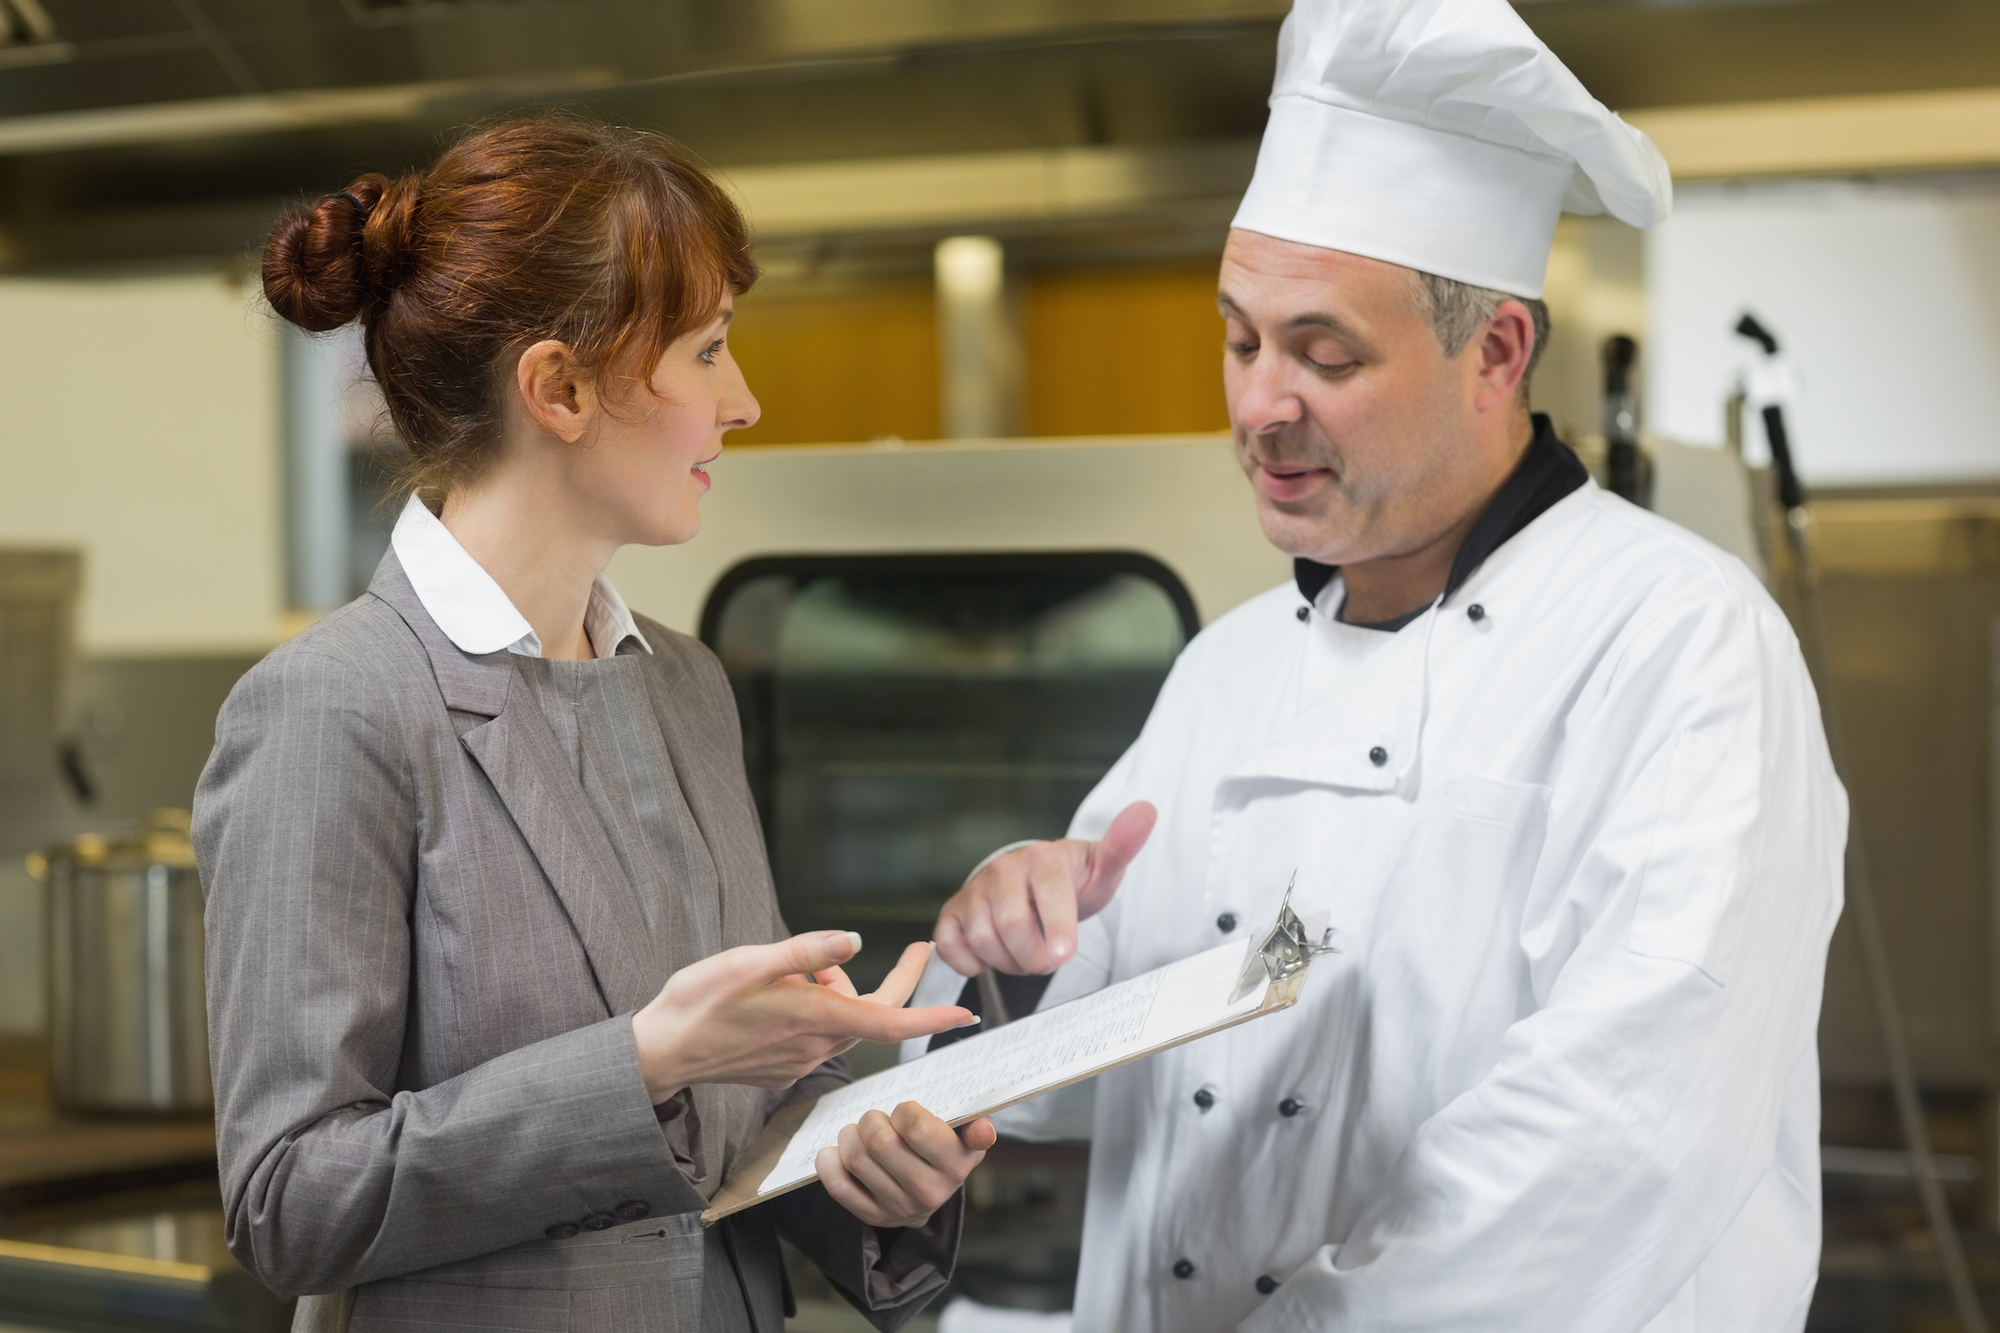 How to prepare for your next commercial kitchen health and fire safety inspection.